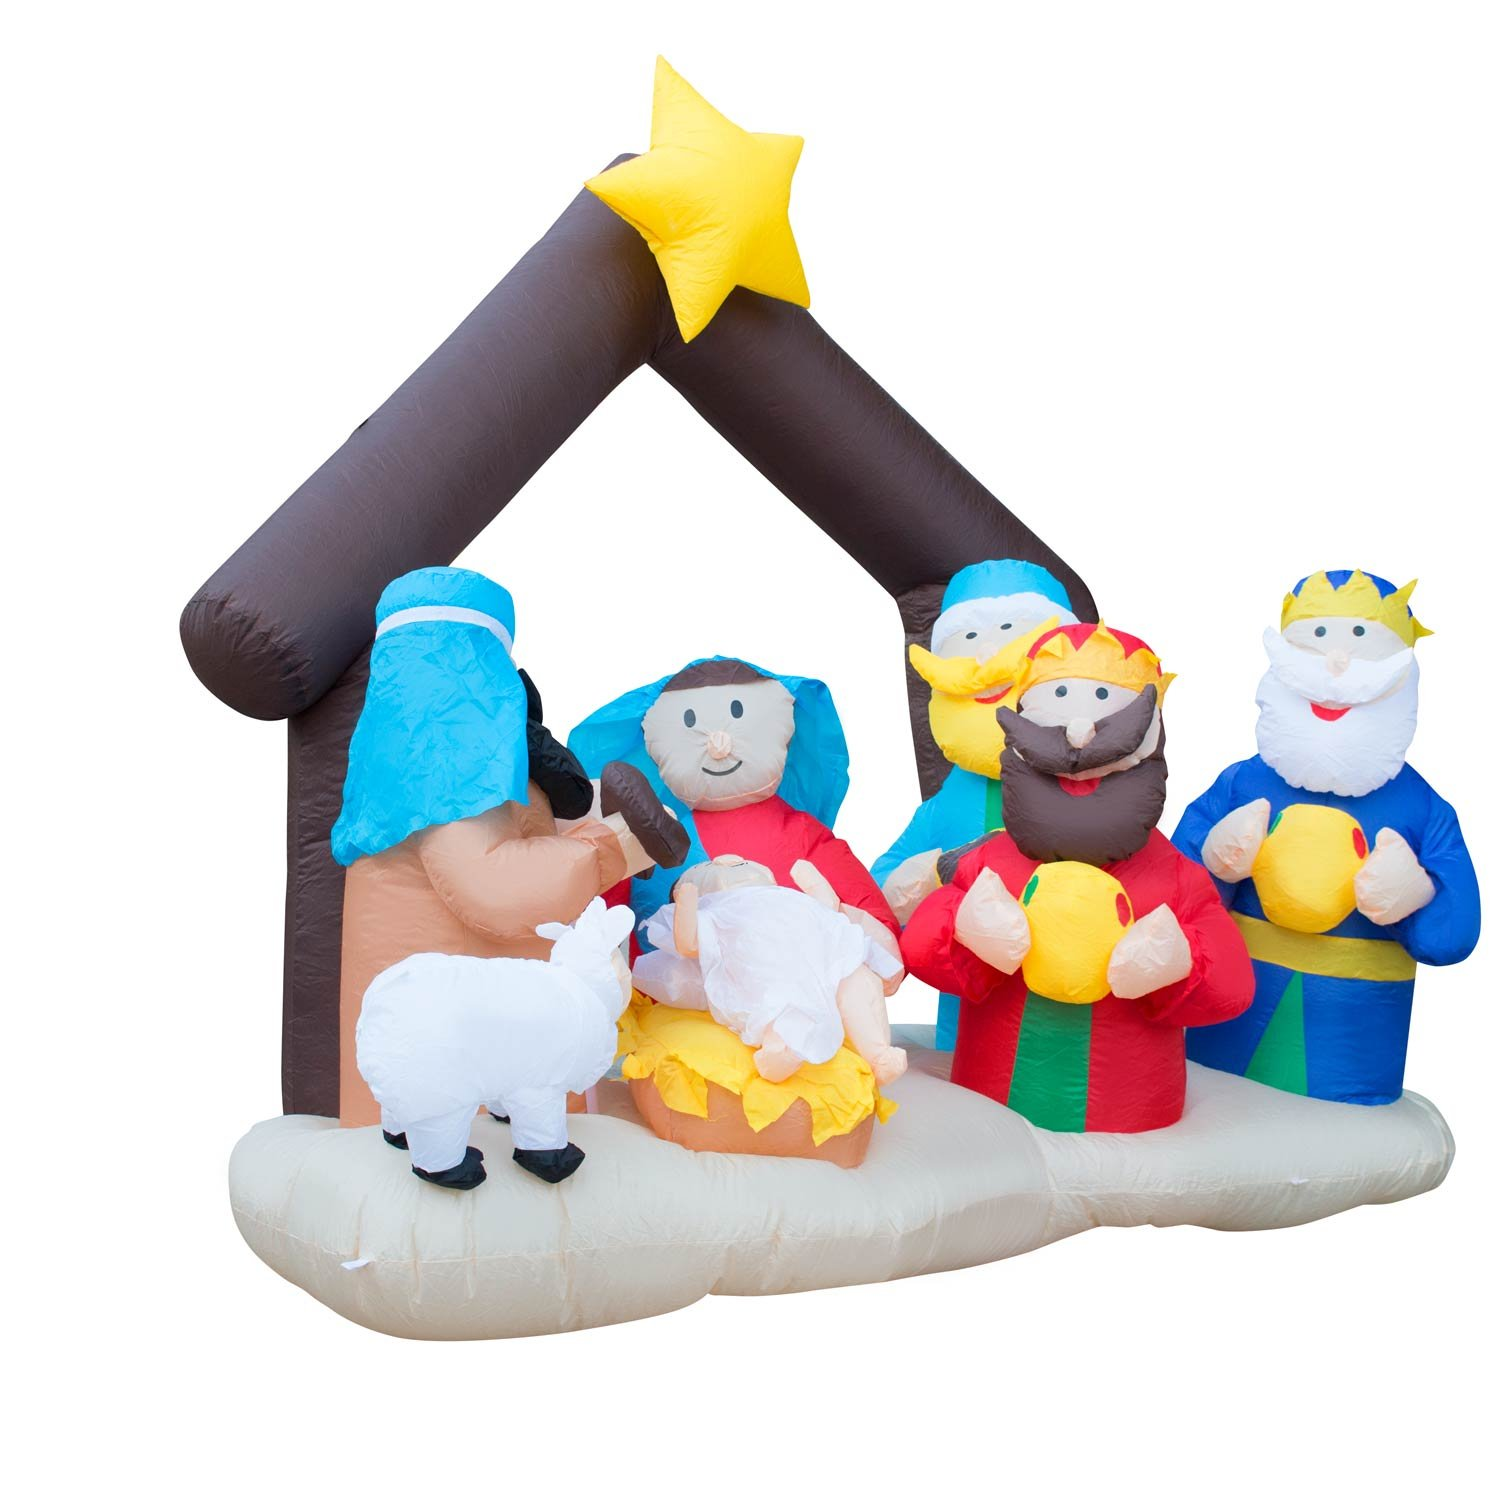 Holidayana Christmas Inflatable Giant 6.5 Ft. Nativity Scene Inflatable Featuring Lighted Interior / Airblown Inflatable Christmas Decoration With Built In Fan And Anchor Ropes by Holidayana (Image #3)